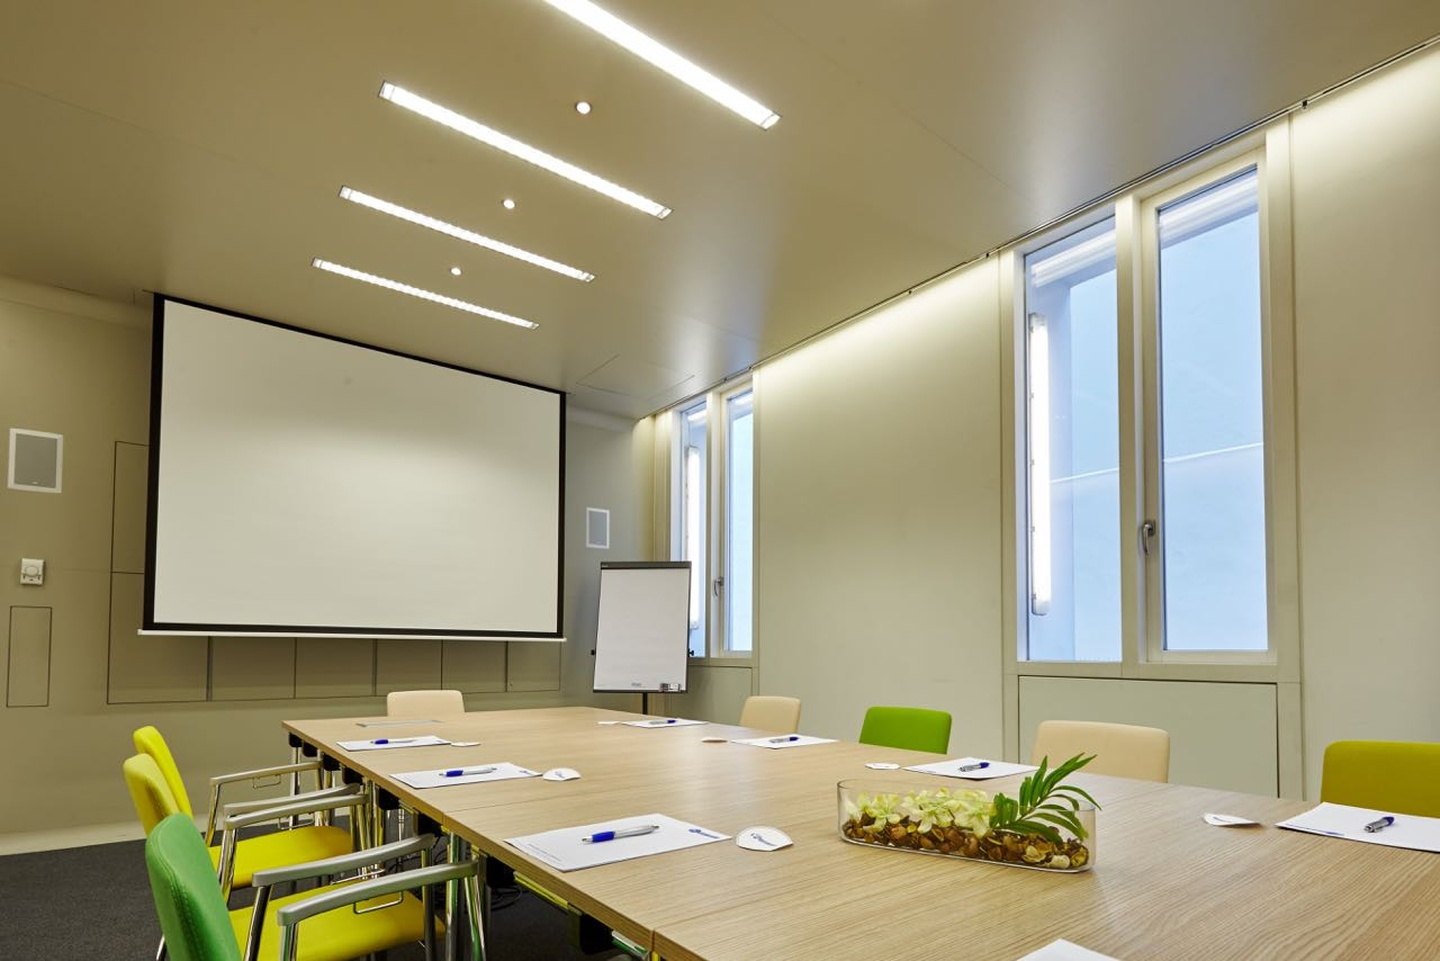 Vienna seminar rooms Historic venue Your Office - Albert Einstein image 2